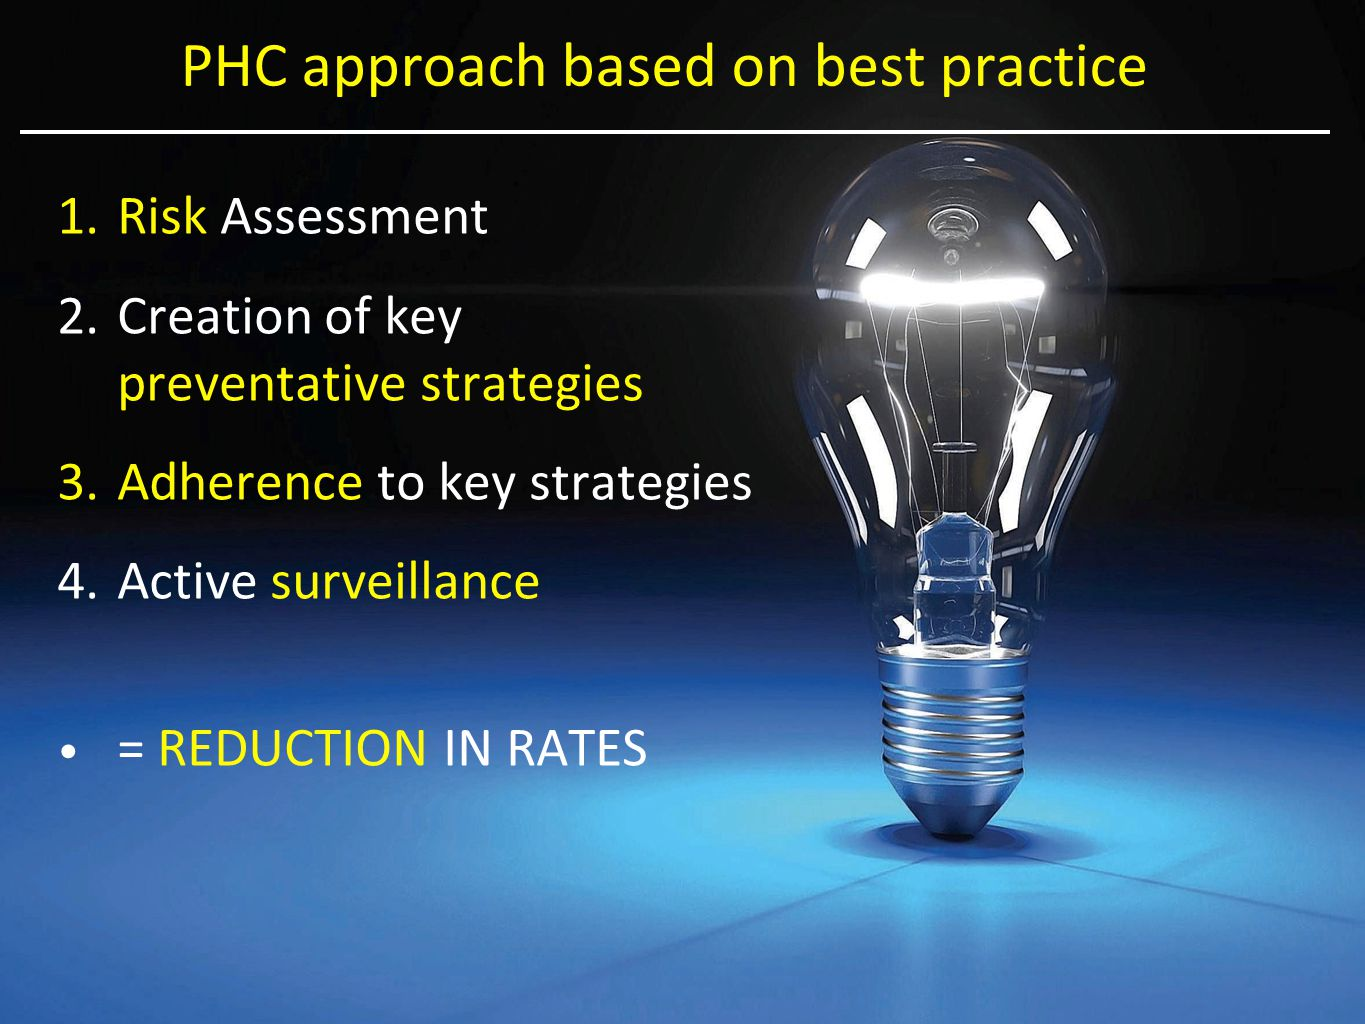 PHC approach based on best practice 1.Risk Assessment 2.Creation of key preventative strategies 3.Adherence to key strategies 4.Active surveillance = REDUCTION IN RATES